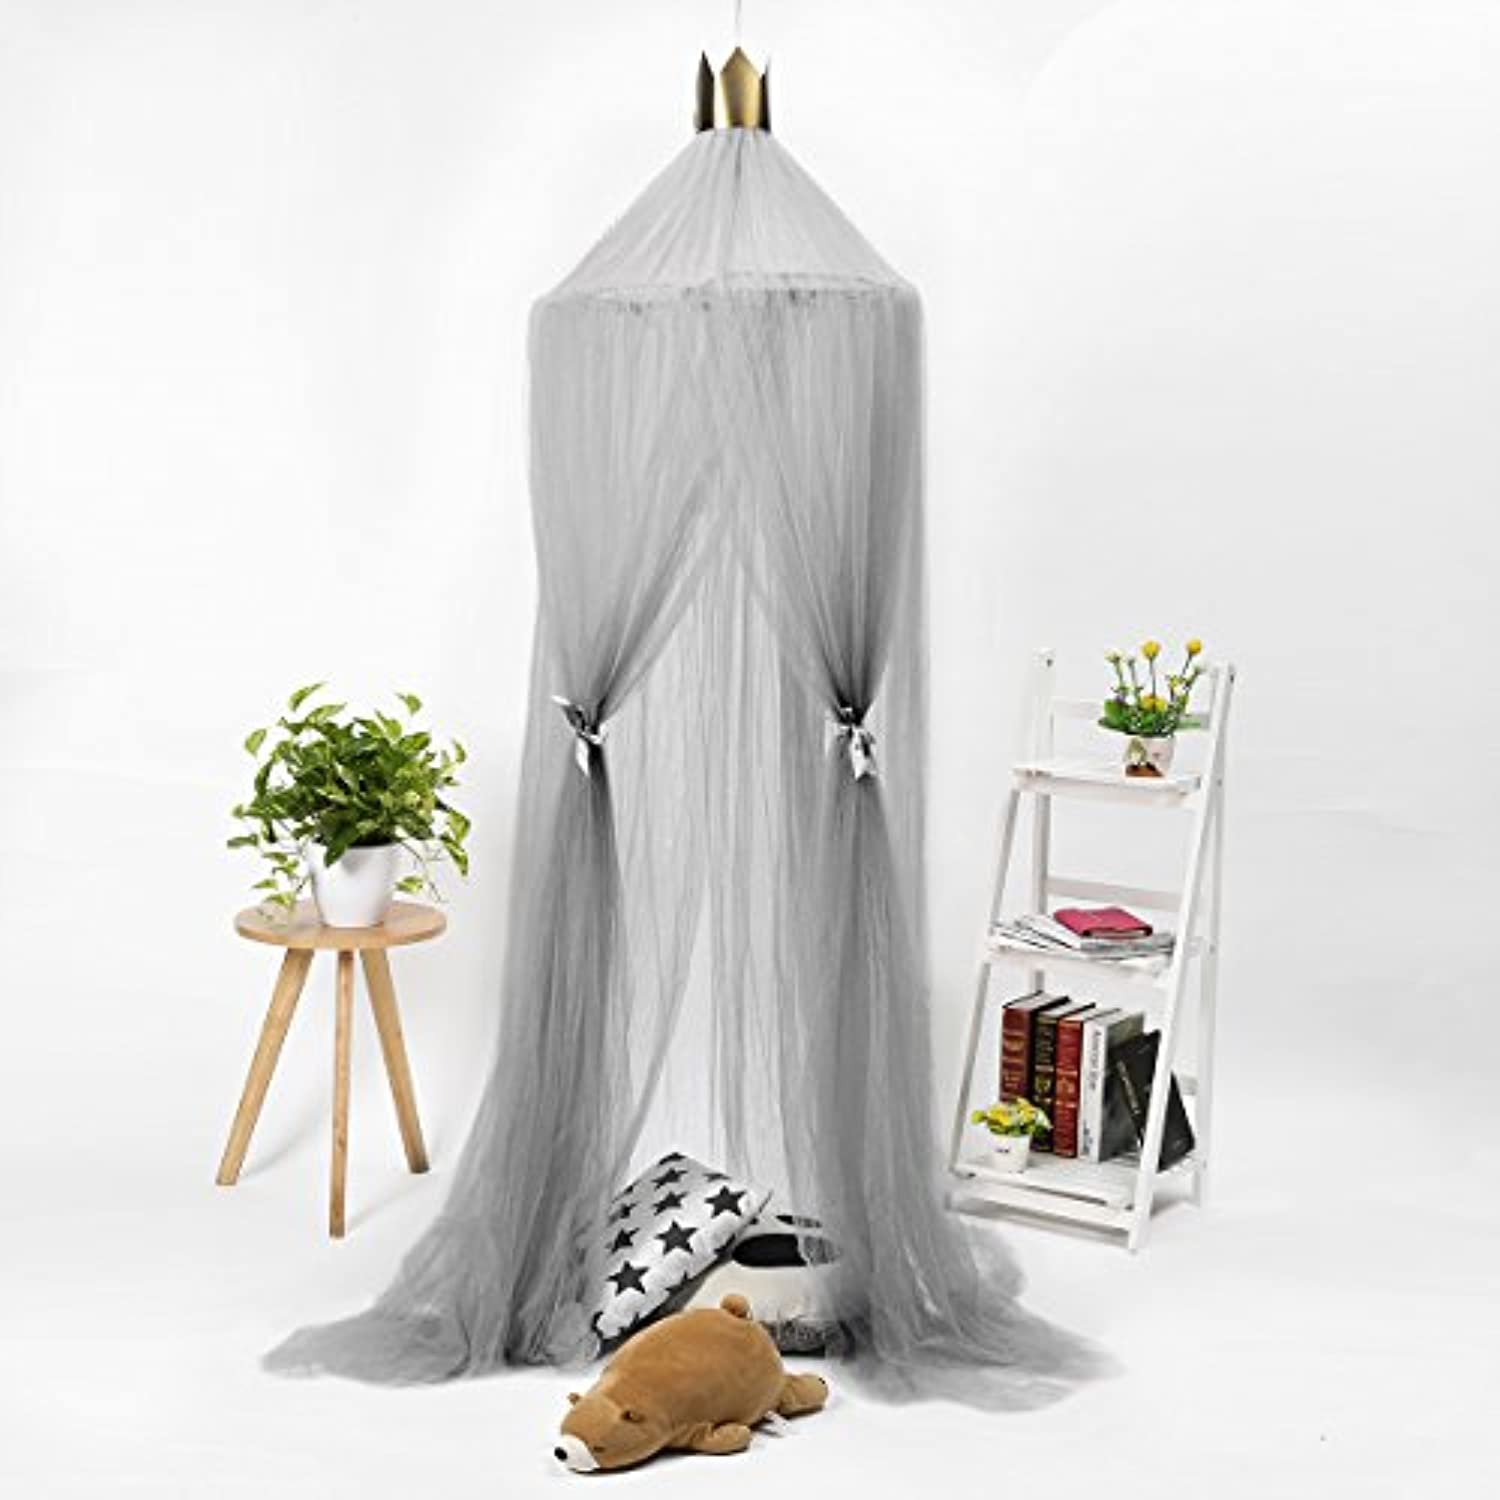 (Grey) - Jeteven Polyester Dome Bed Canopy Kids Play Tent Mosquito Net with Crown for Baby Kids Indoor Outdoor Playing Reading Height 240cm/94.5in Grey